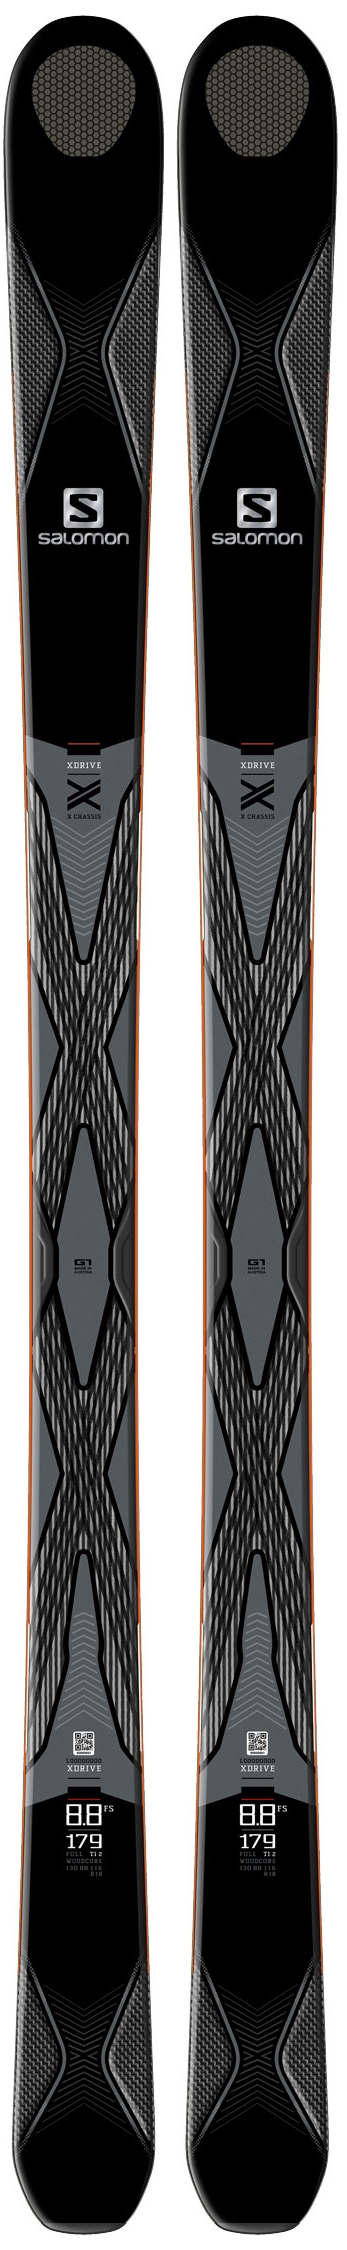 Salomon X-DRIVE 8.8 FS Skis, $699.95